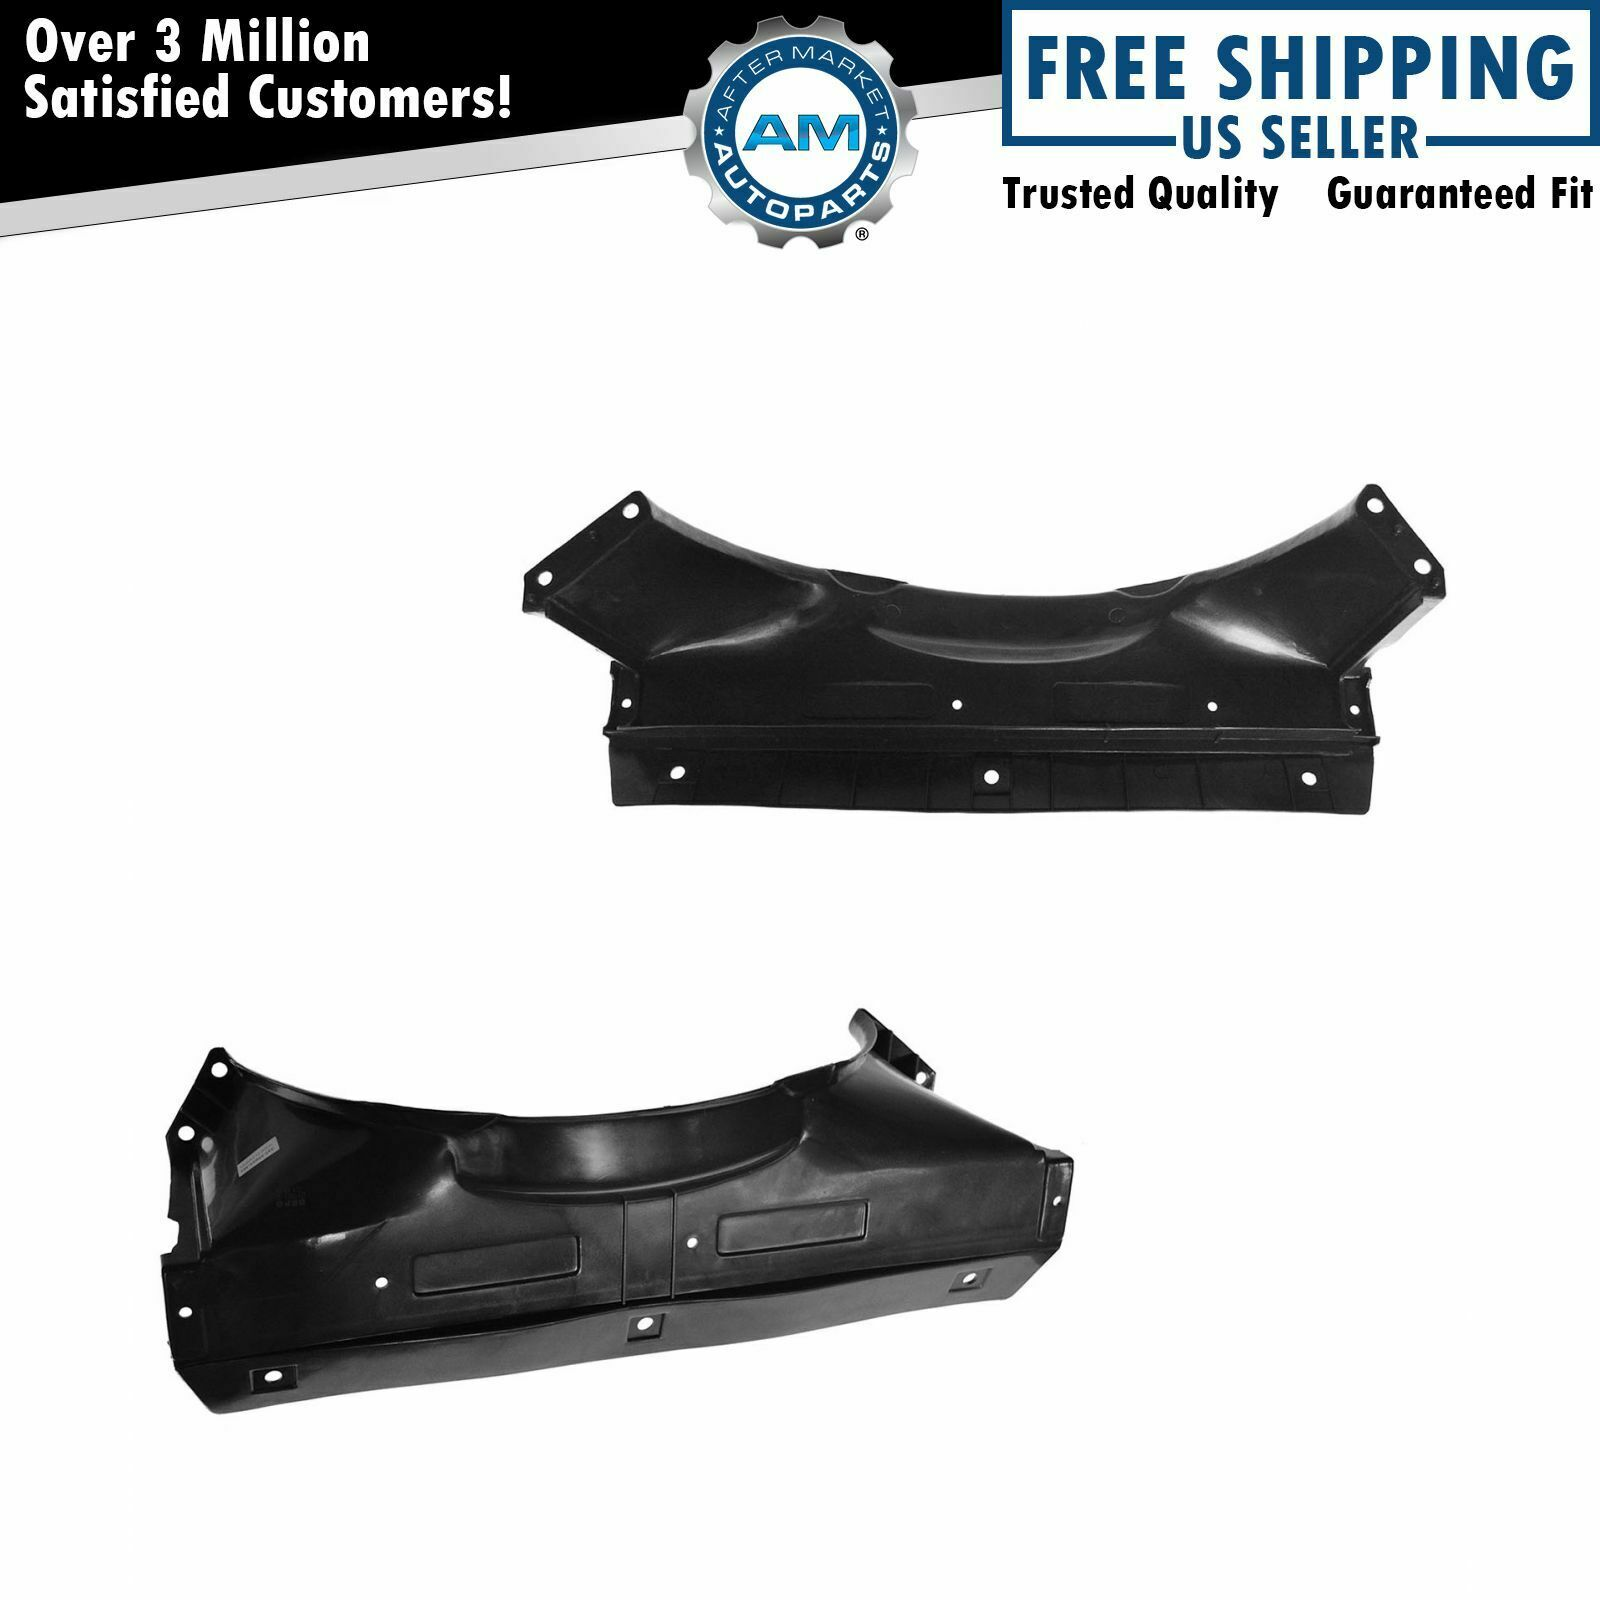 Radiator Fan Shroud Upper Lower Pair Set For S10 Blazer Jimmy Jeep Tj Derale Threadin Thermostat Control With Dual Threads 1 Of 7only 5 Available